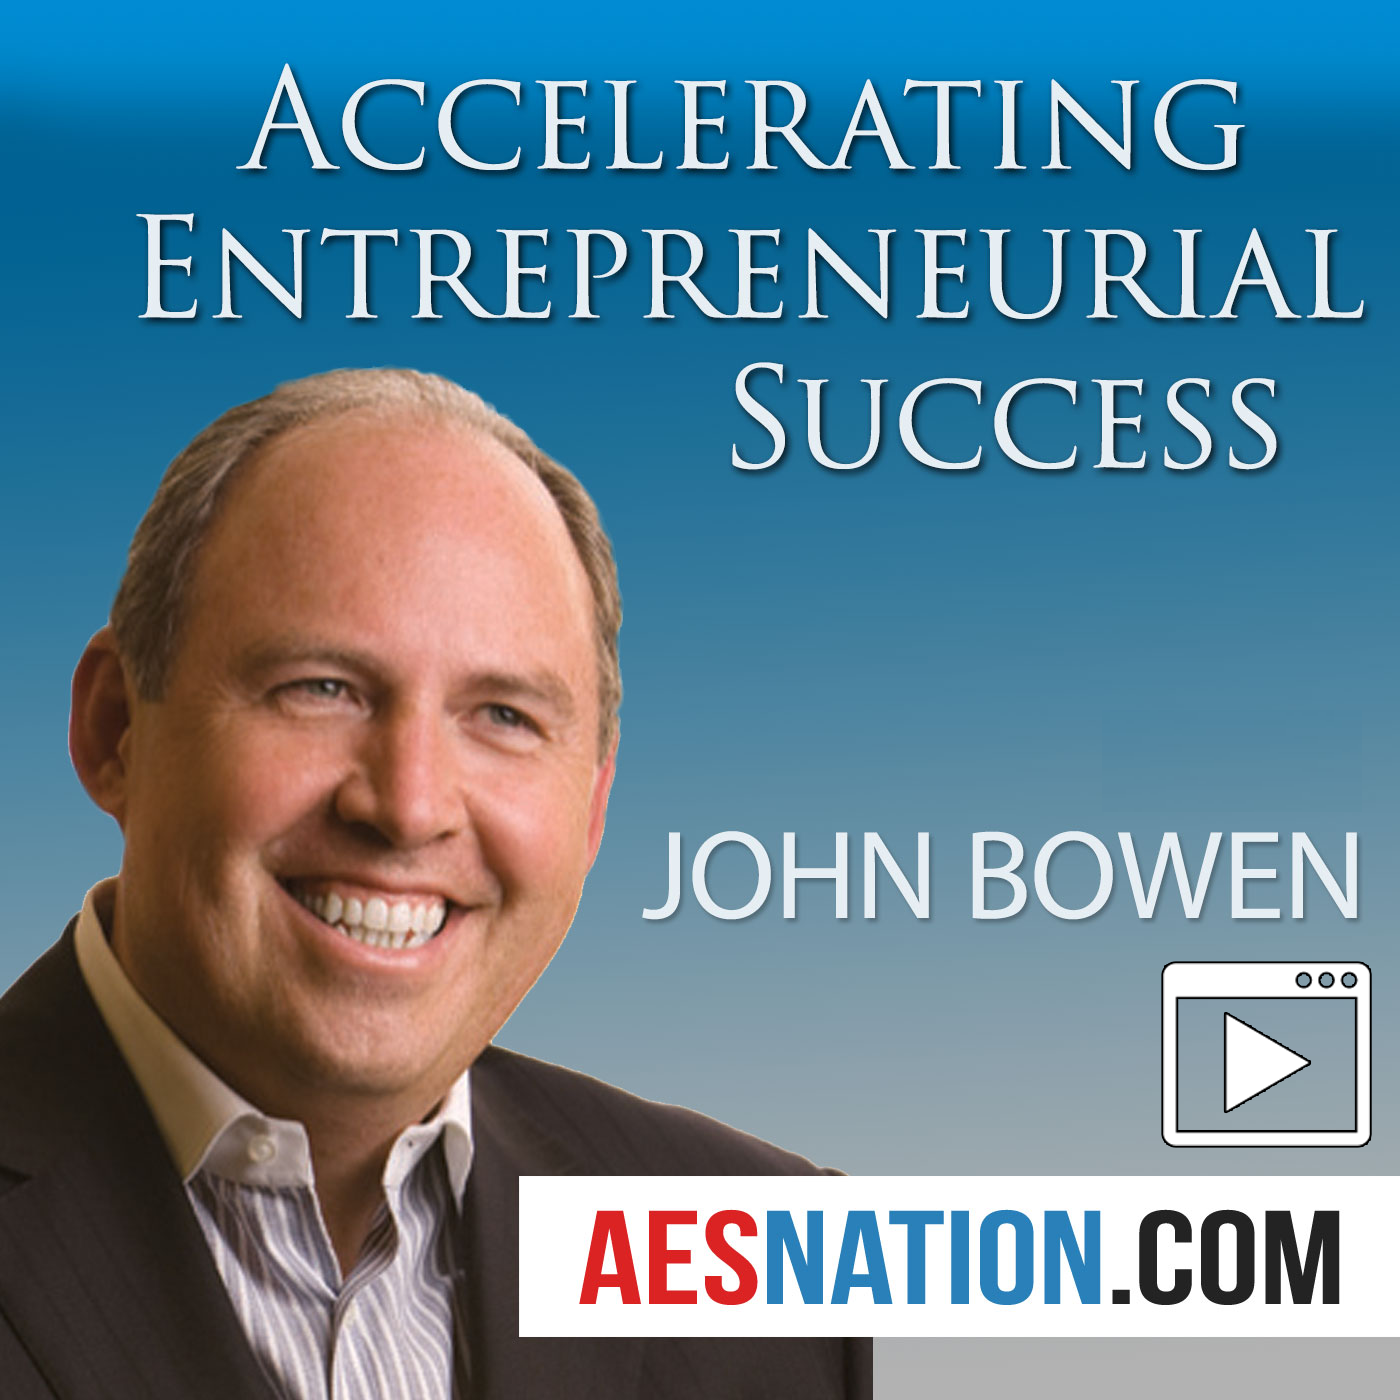 Accelerating Entrepreneurial Success (Video) with John Bowen